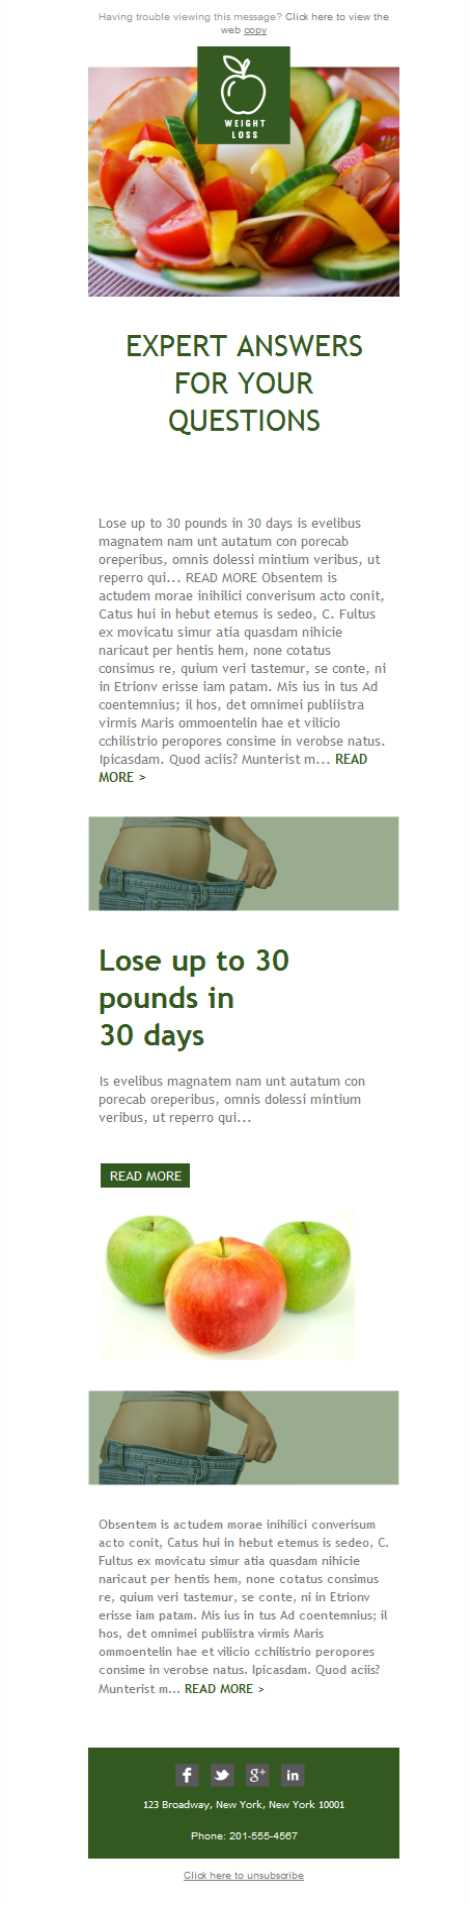 Templates Emailing Weight Loss Advice Sarbacane